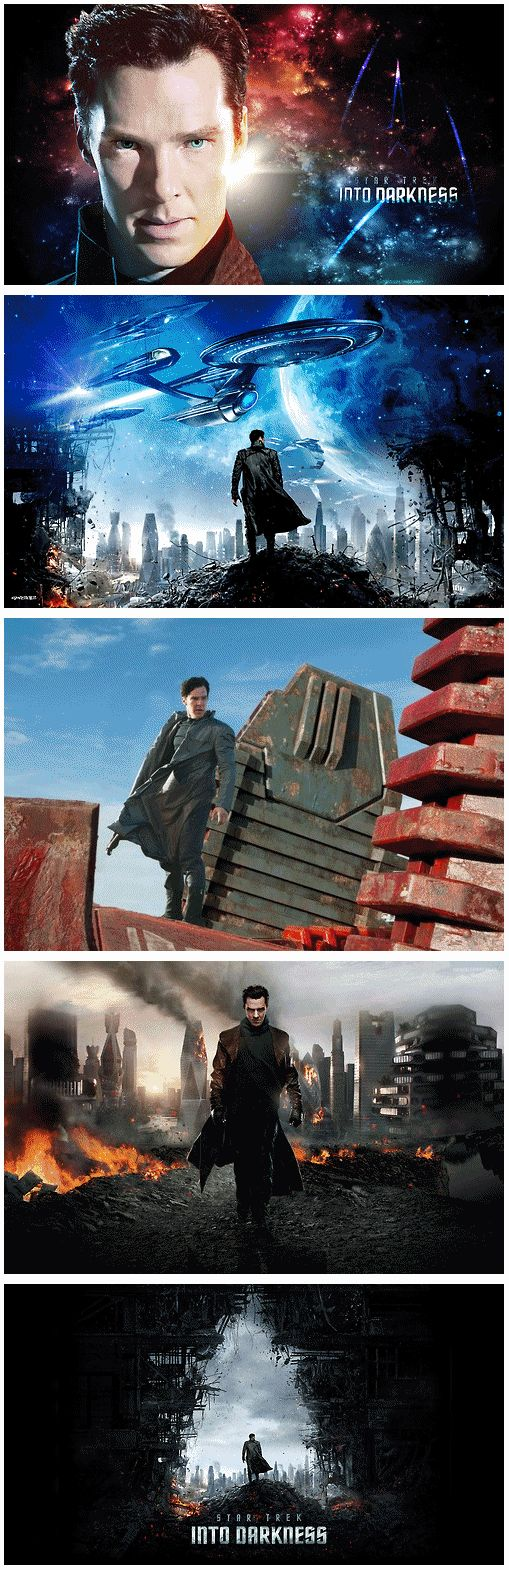 Star Trek Into Darkness. Holy mother I have the most firing burning passion for benedict cumberbatch in the entire world.